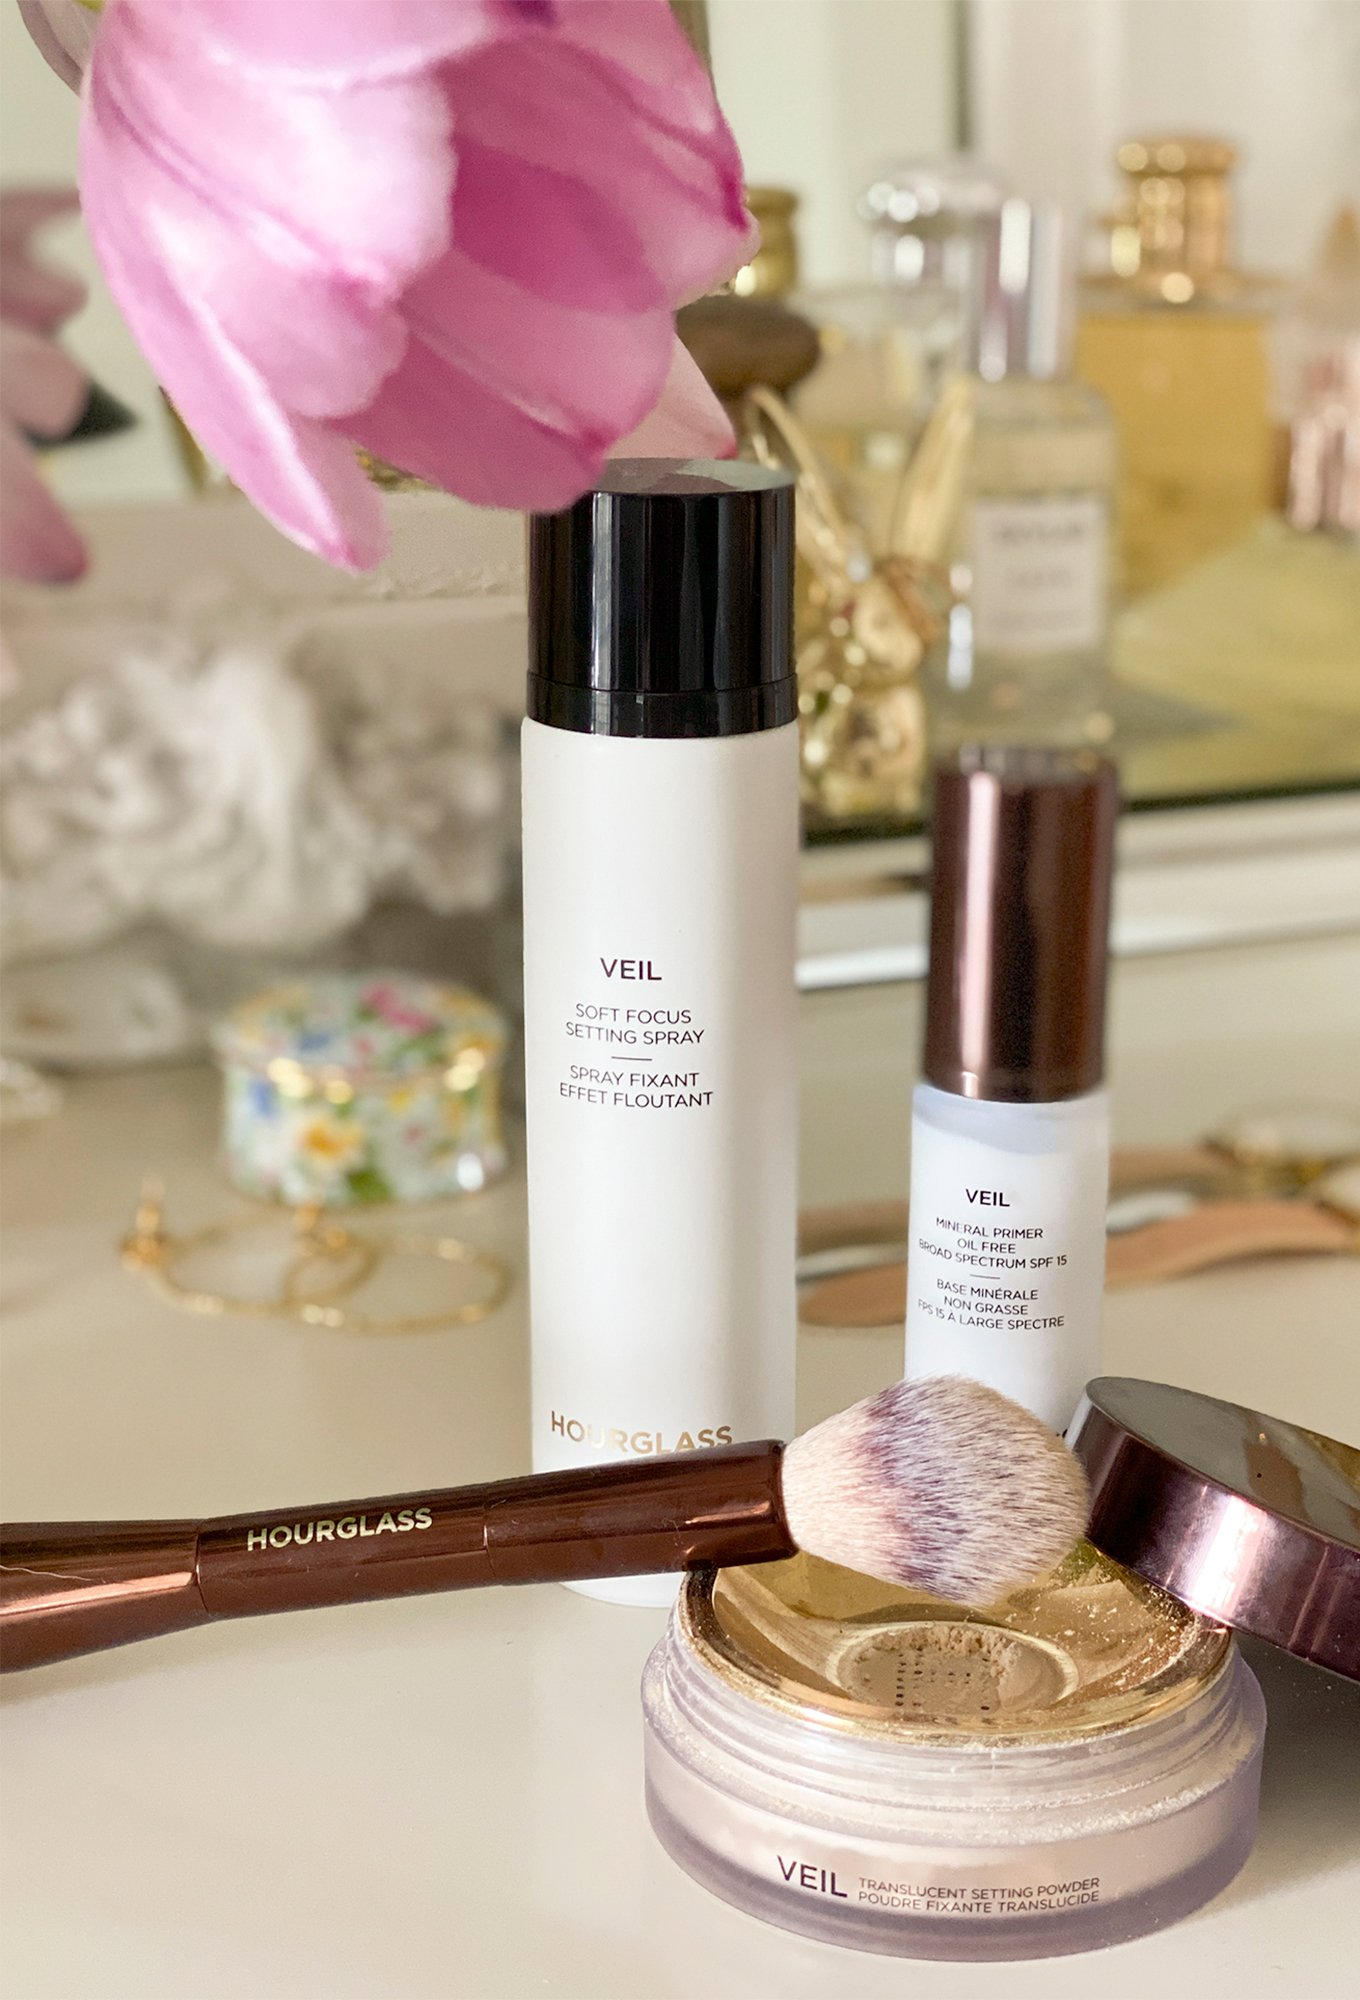 Hourglass Cosmetics Review by Ashley Brooke